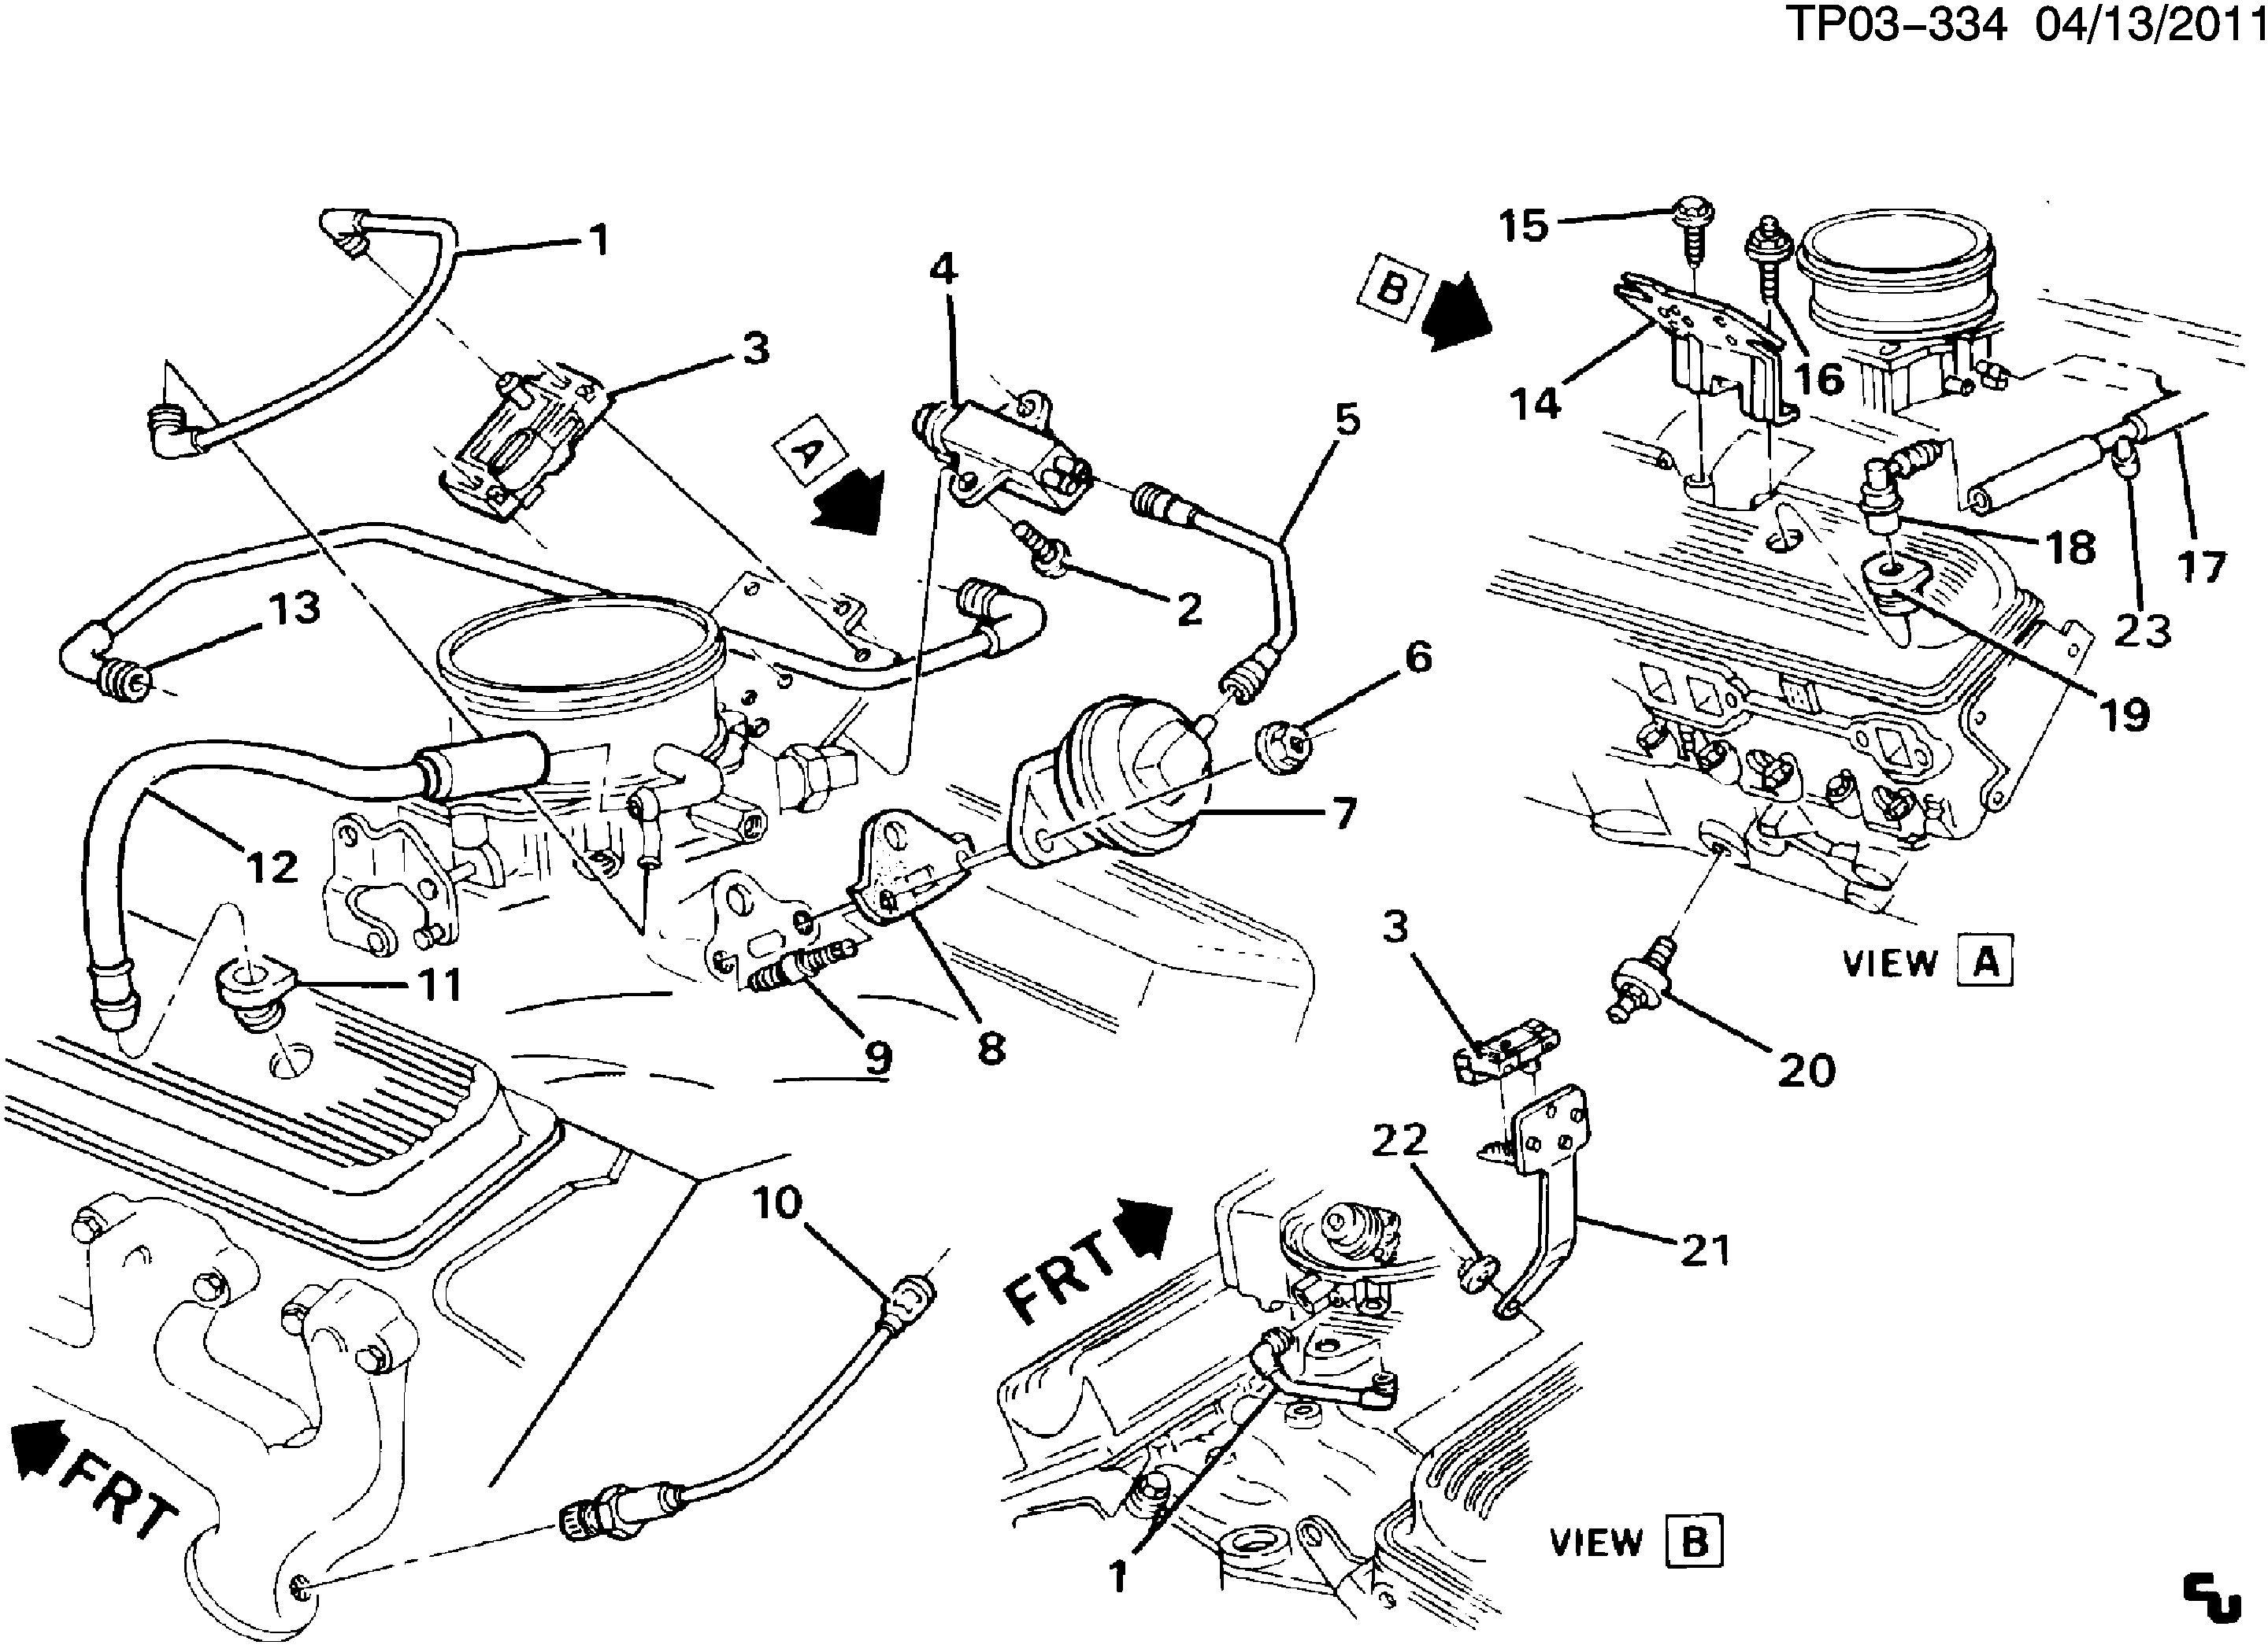 350 chevy engine diagrams 1t schwabenschamanen de \u2022 1994 Chevy LT1 Engine Diagrams 350 v8 engine diagram ju davidforlife de u2022 rh ju davidforlife de 1988 chevy 350 engine diagram chevy 350 tbi engine diagram